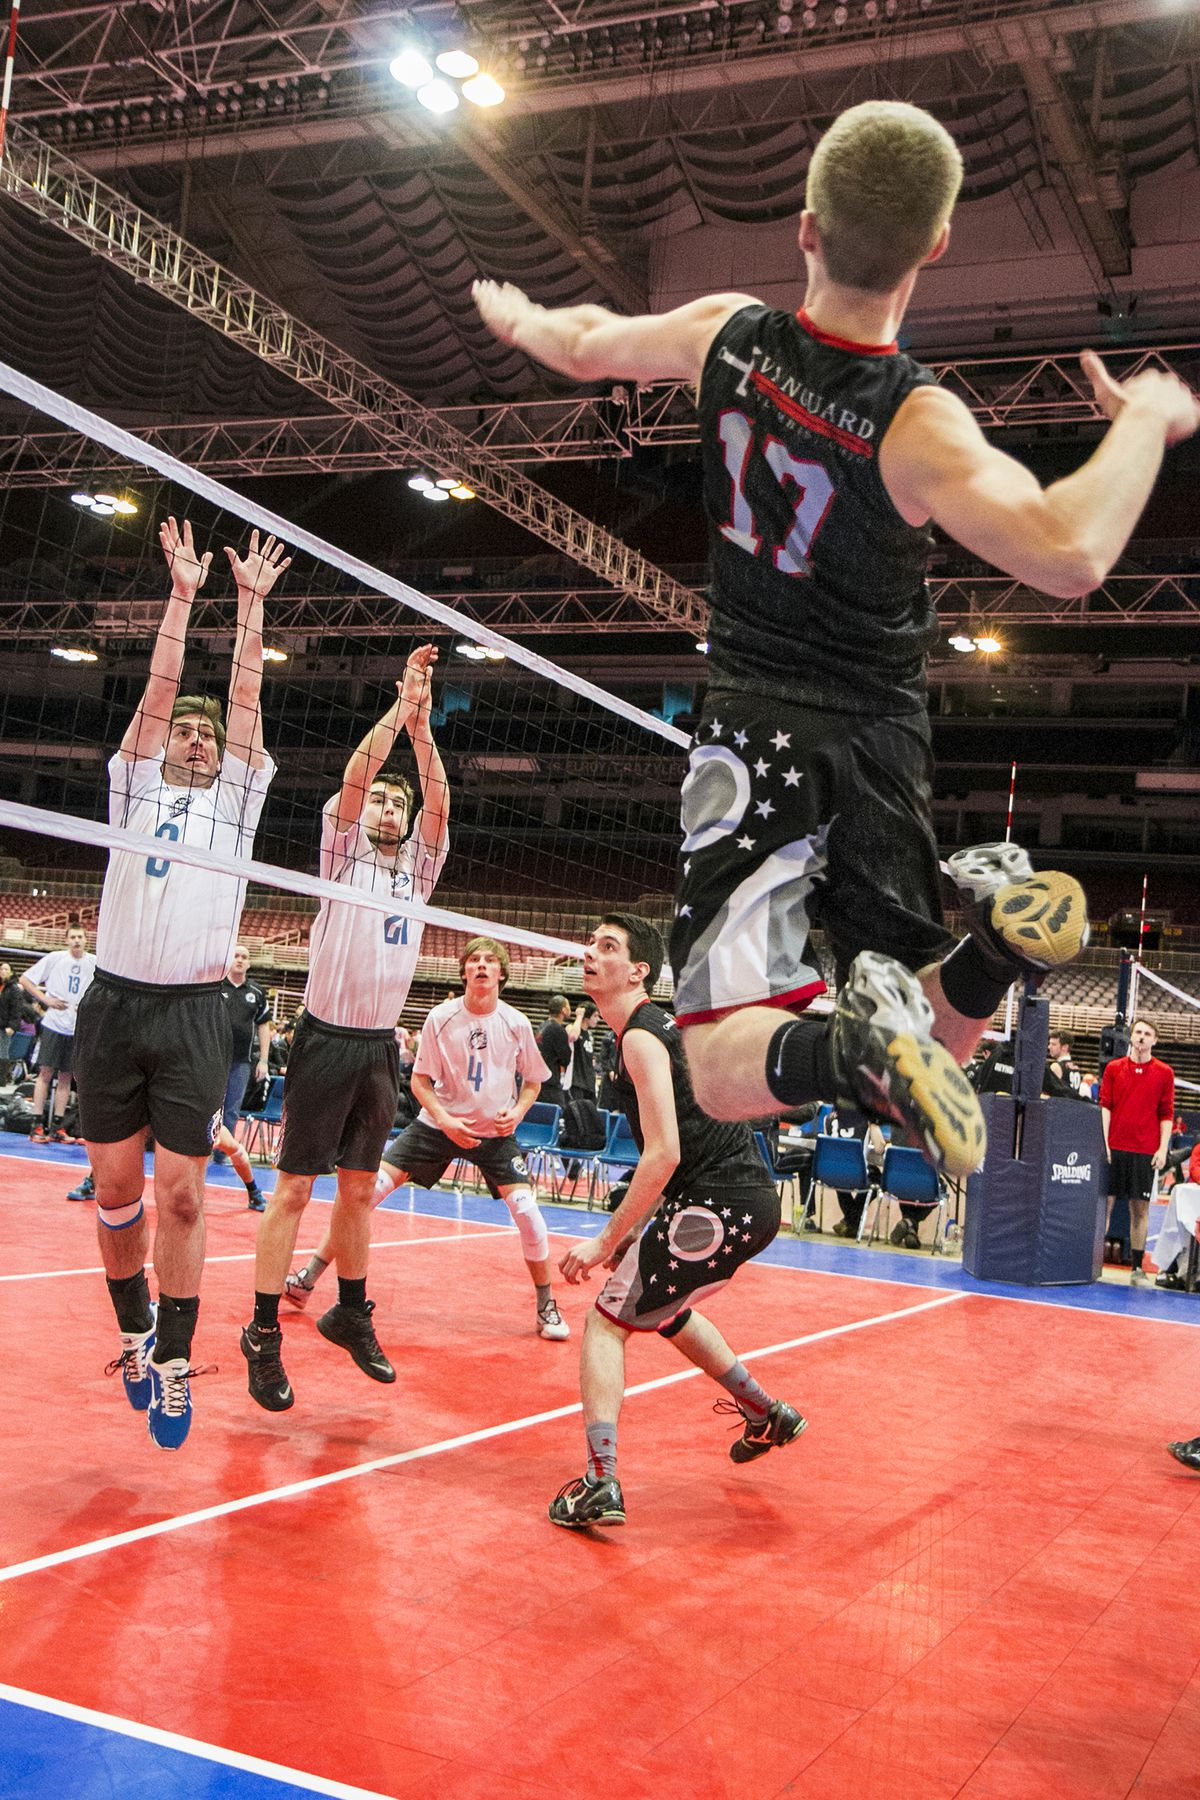 Gay Stanford volleyball player feels embraced after coming